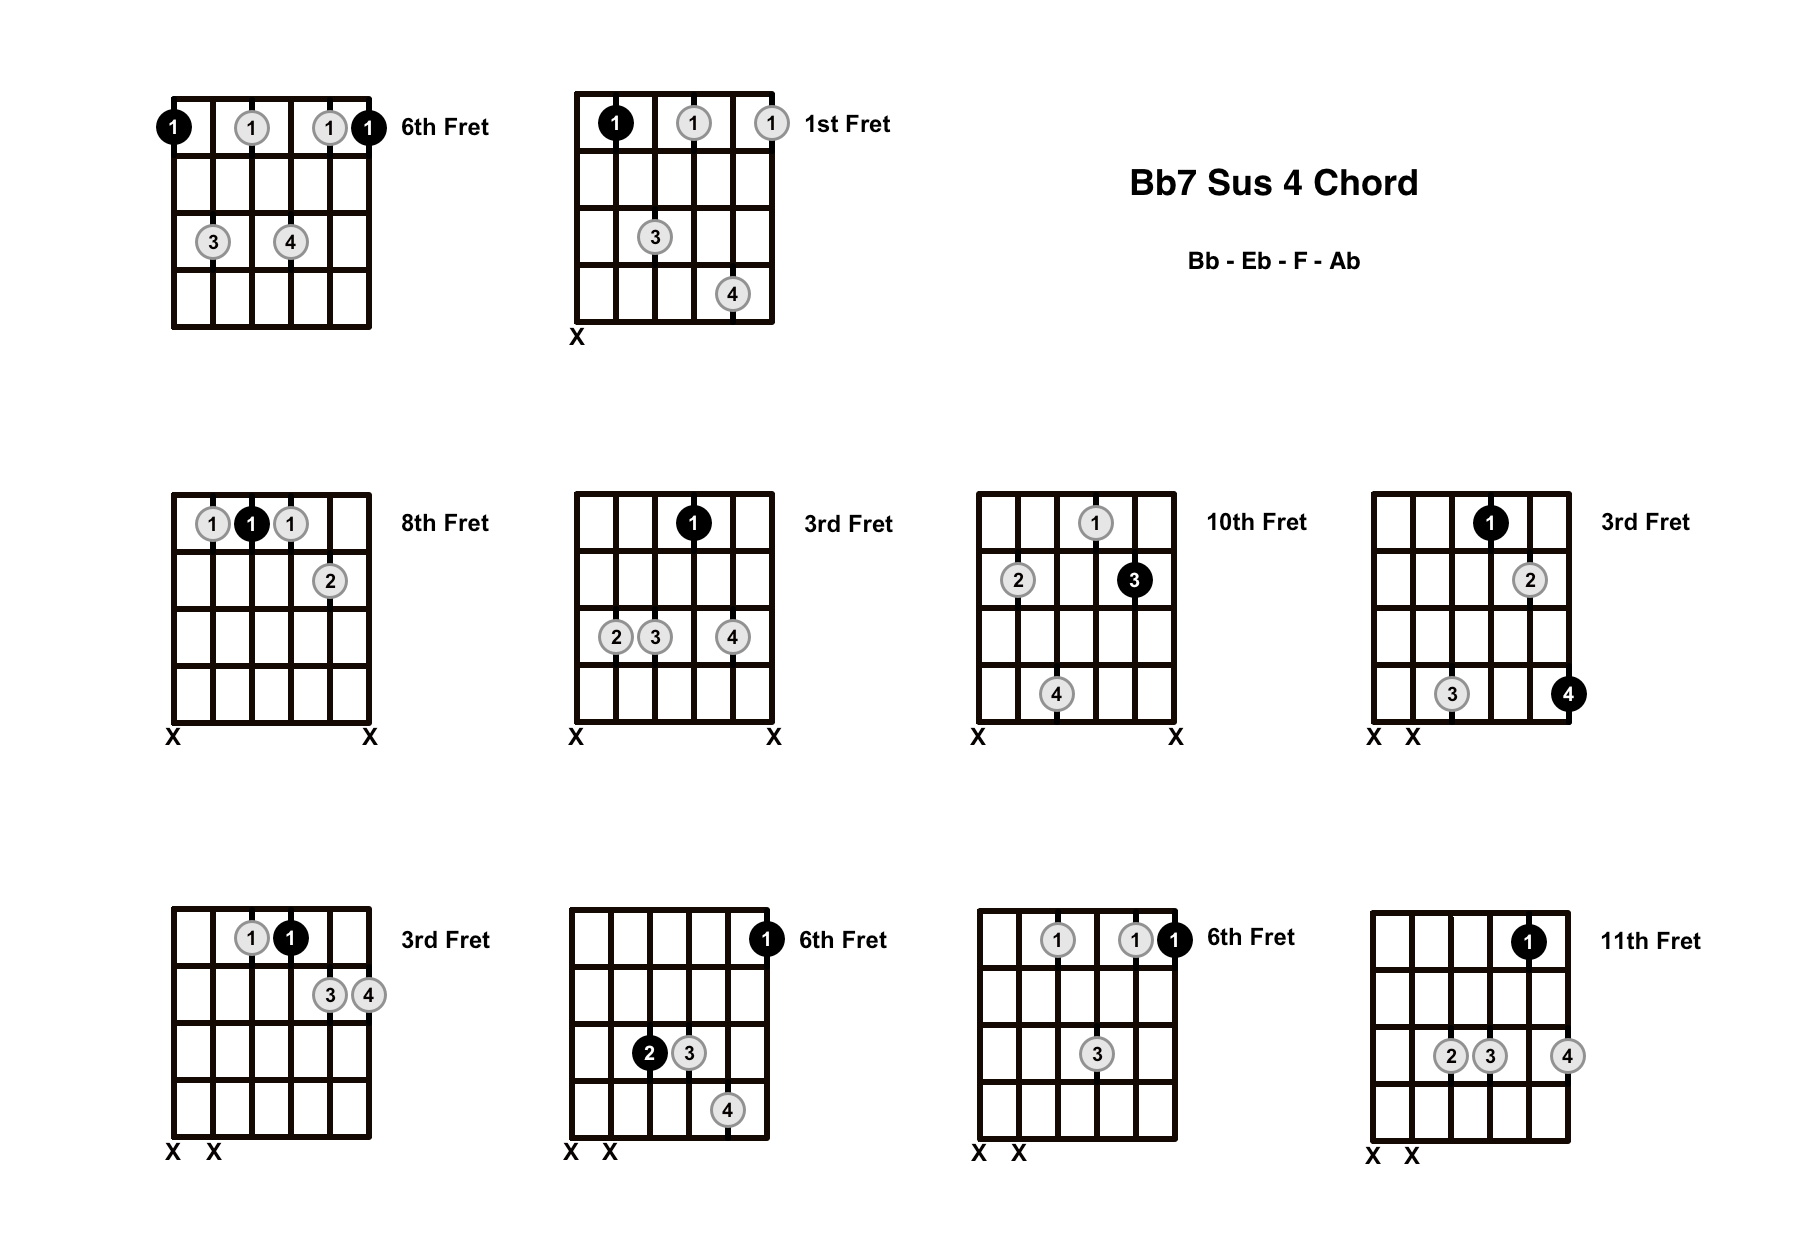 Bb7 Sus 4 Chord On The Guitar (B Flat 7 Suspended 4) – Diagrams, Finger Positions and Theory